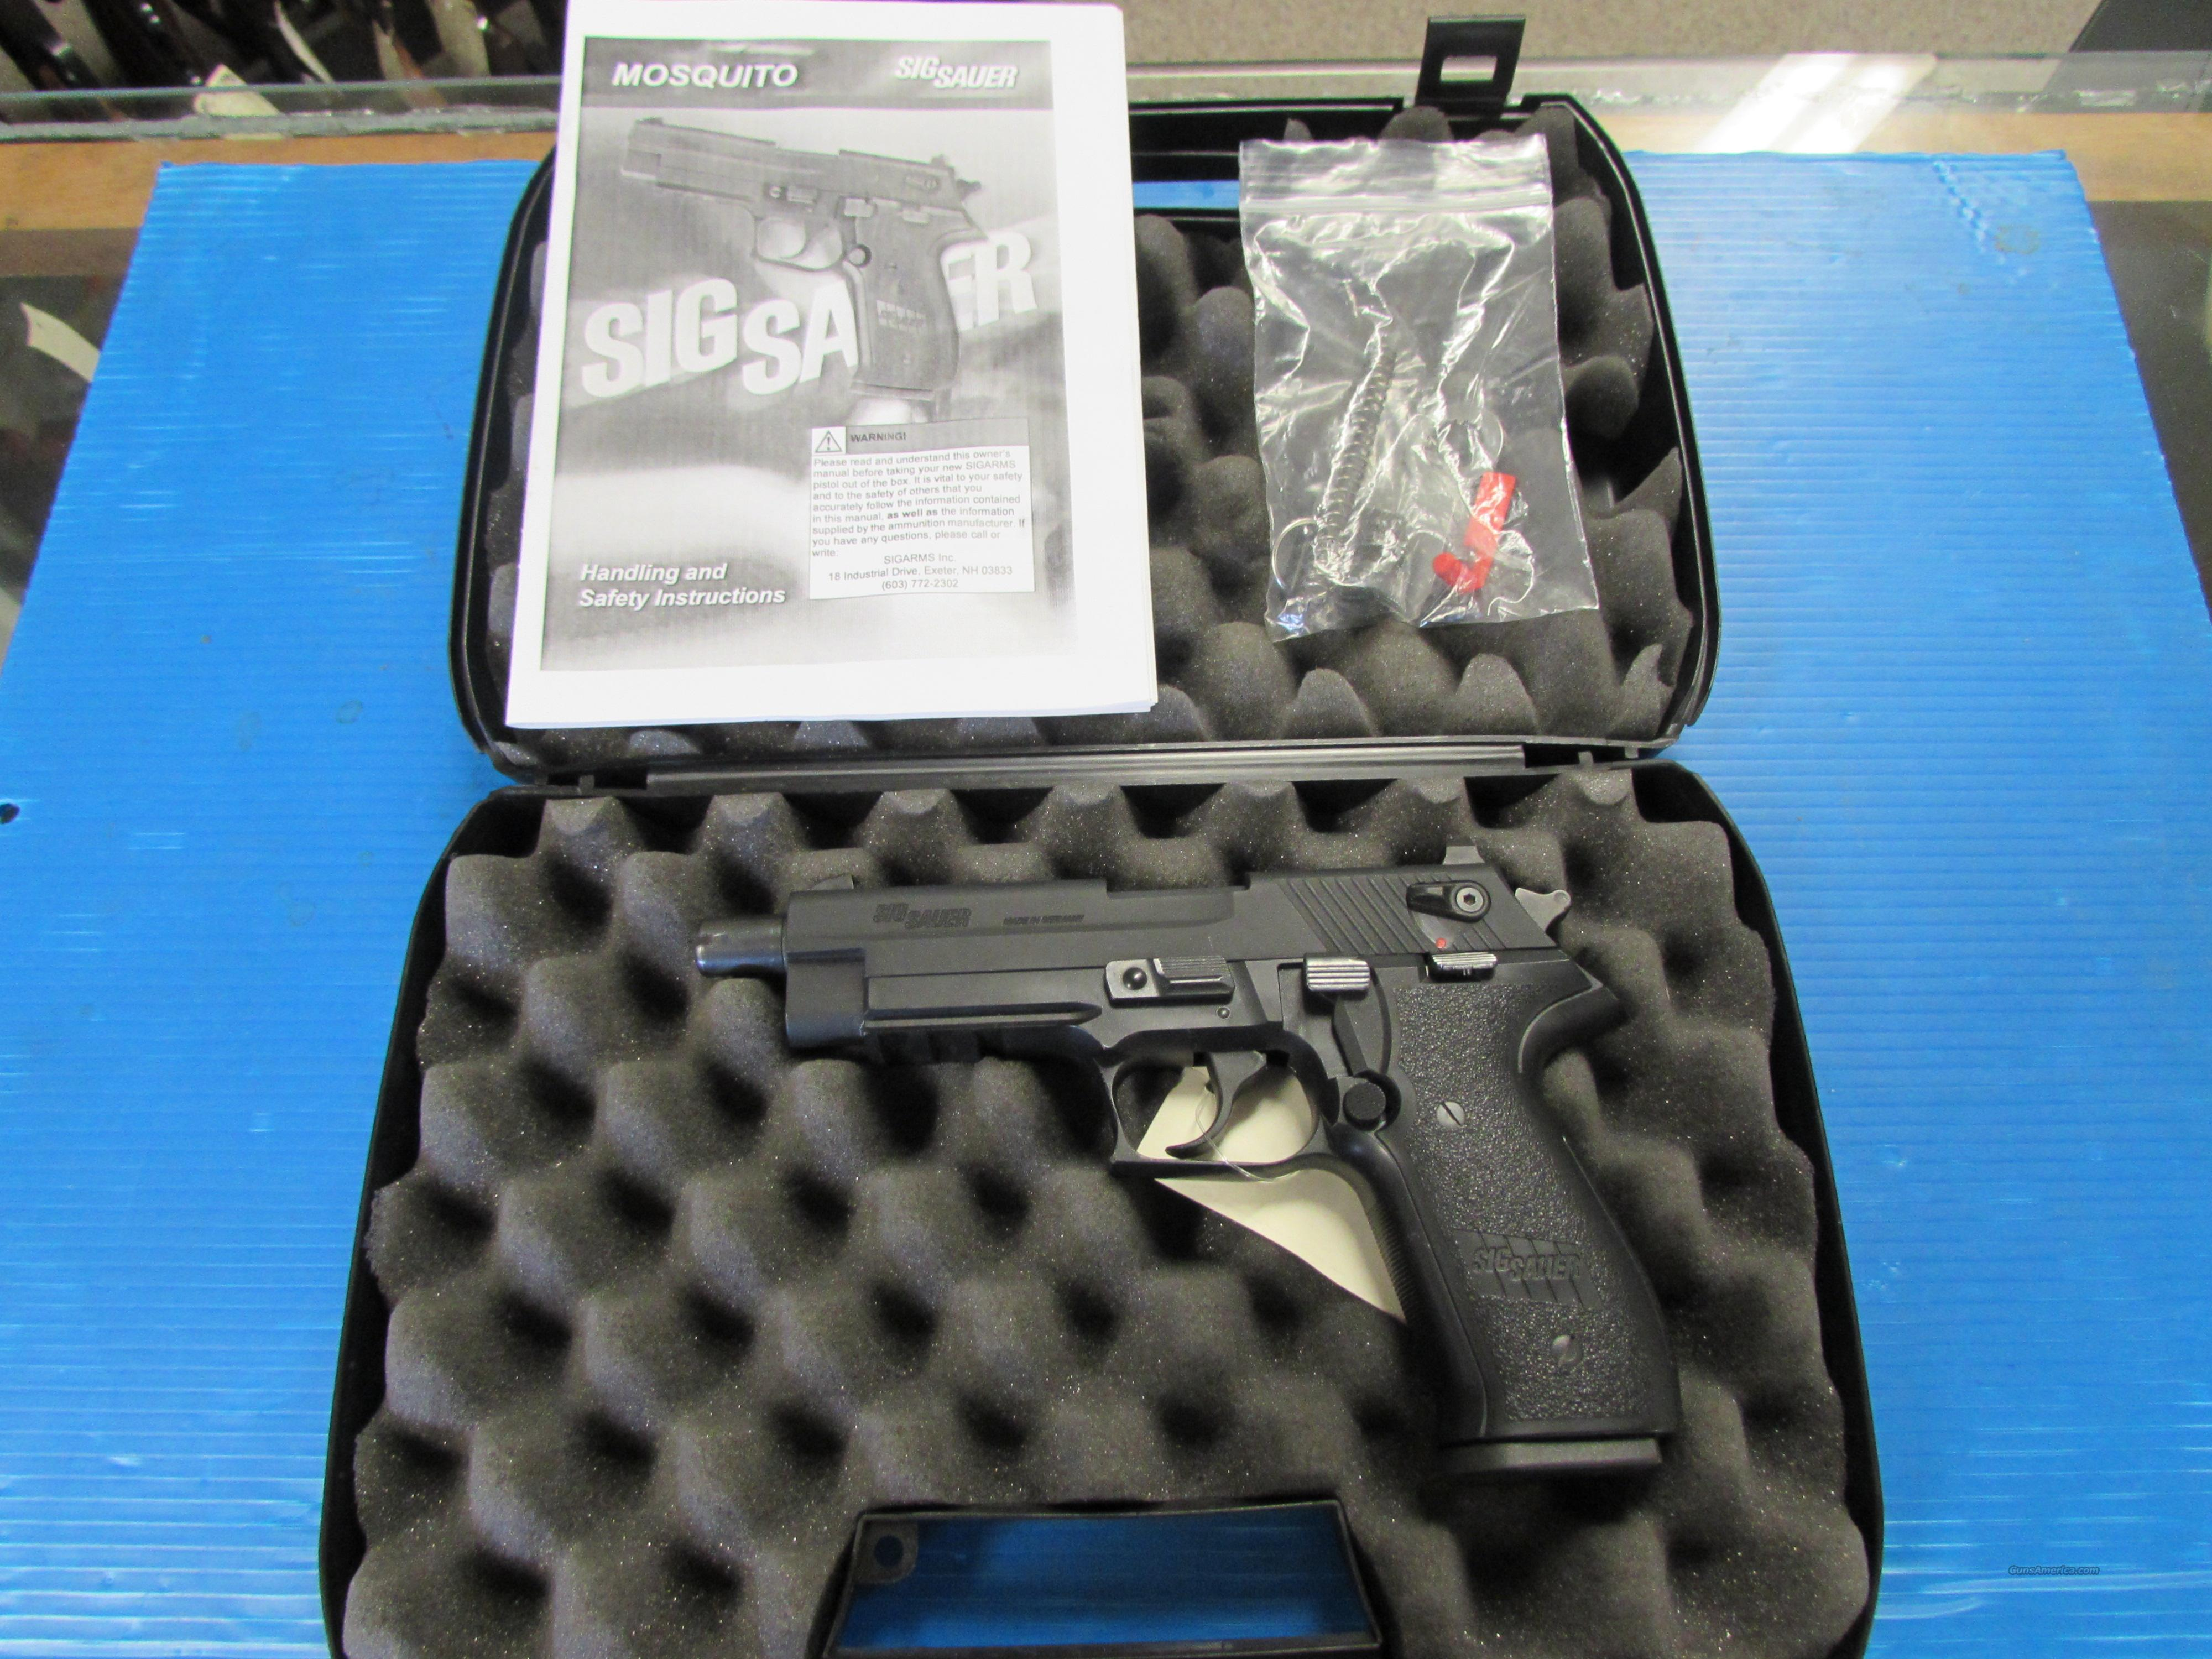 SIG SAUER MOSQUITO 22LR BBB-17-13  Guns > Pistols > Sig - Sauer/Sigarms Pistols > Mosquito